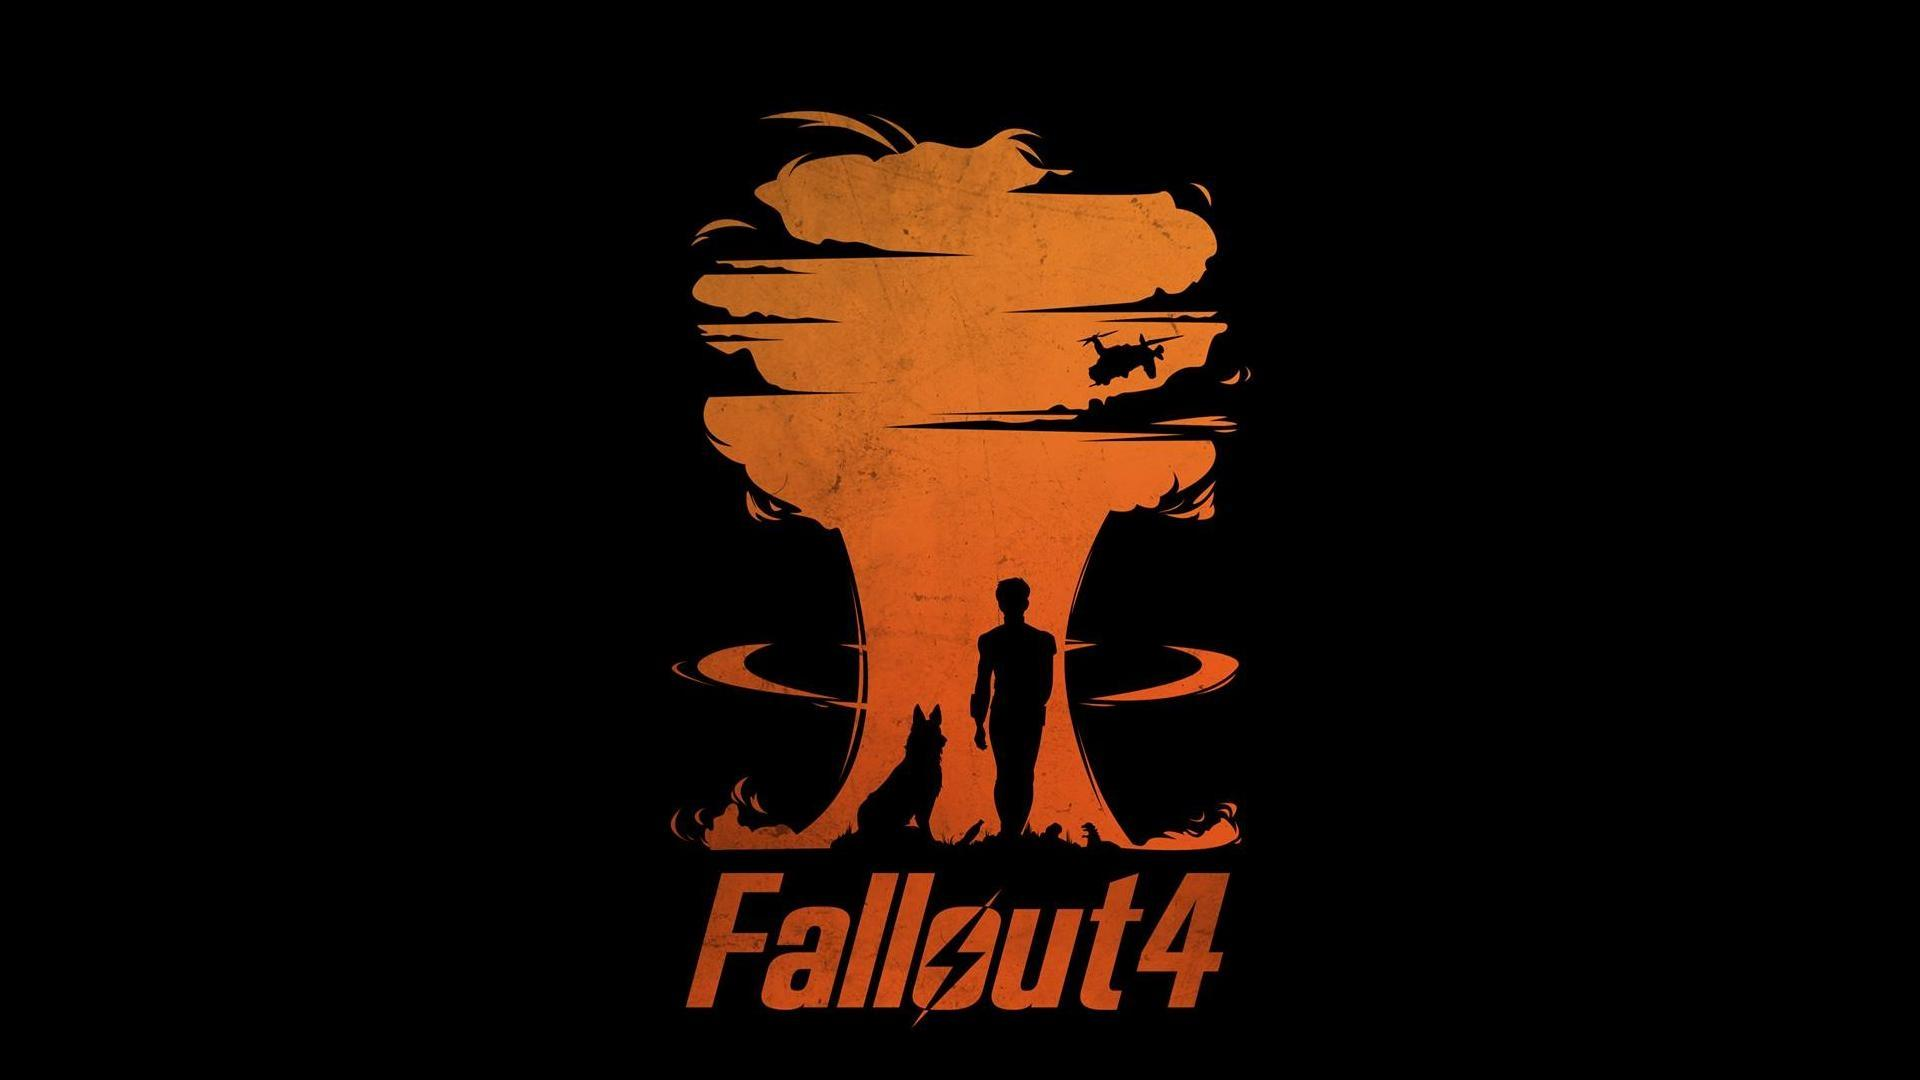 Hd Fallout Wallpaper Posted By Sarah Walker